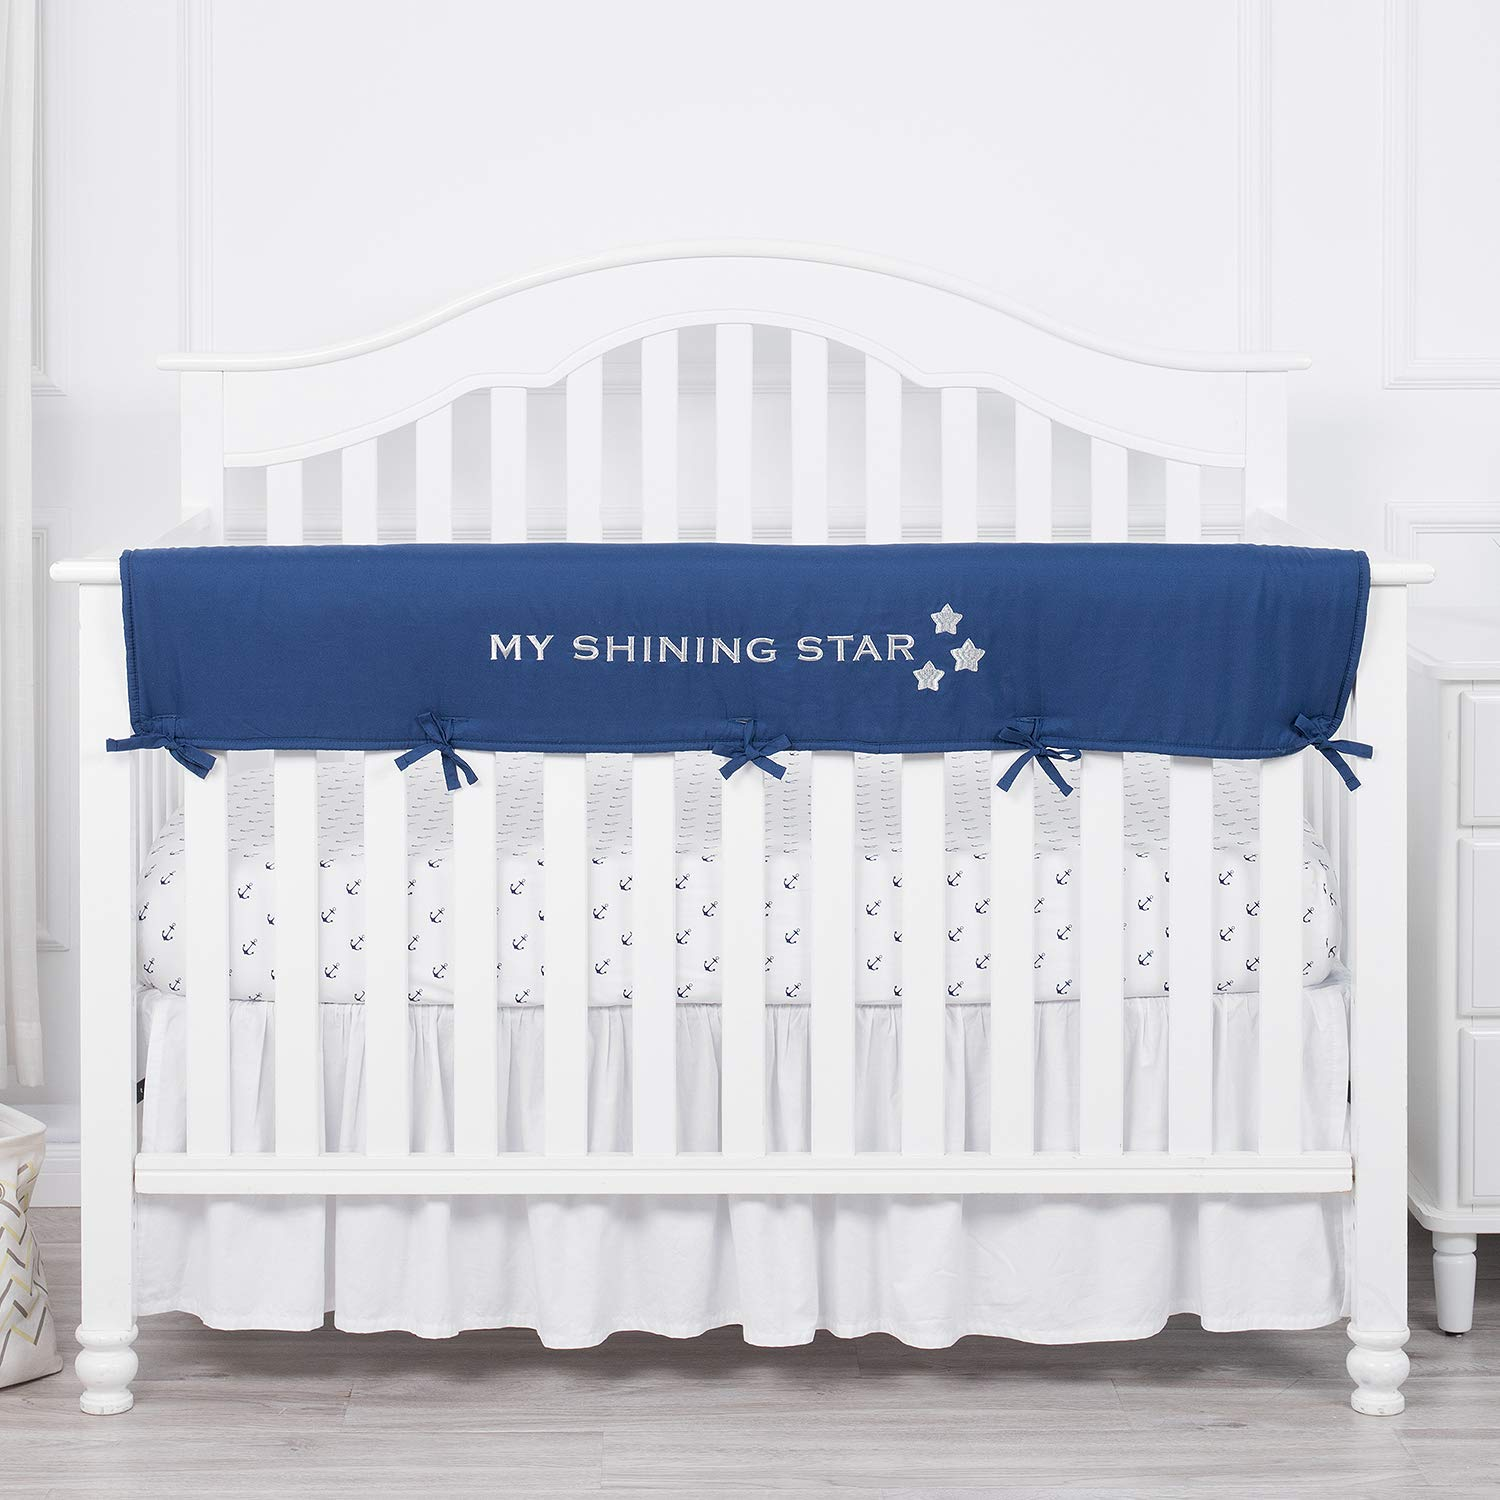 TILLYOU Personalized Padded Baby Crib Rail Cover Protector Safe Teething Guard Wrap for Long Front Rails 100% Silky Soft Microfiber Polyester - Embroidered and Reversible - Navy Blue, My Shining Star 71XktBN2BX8L